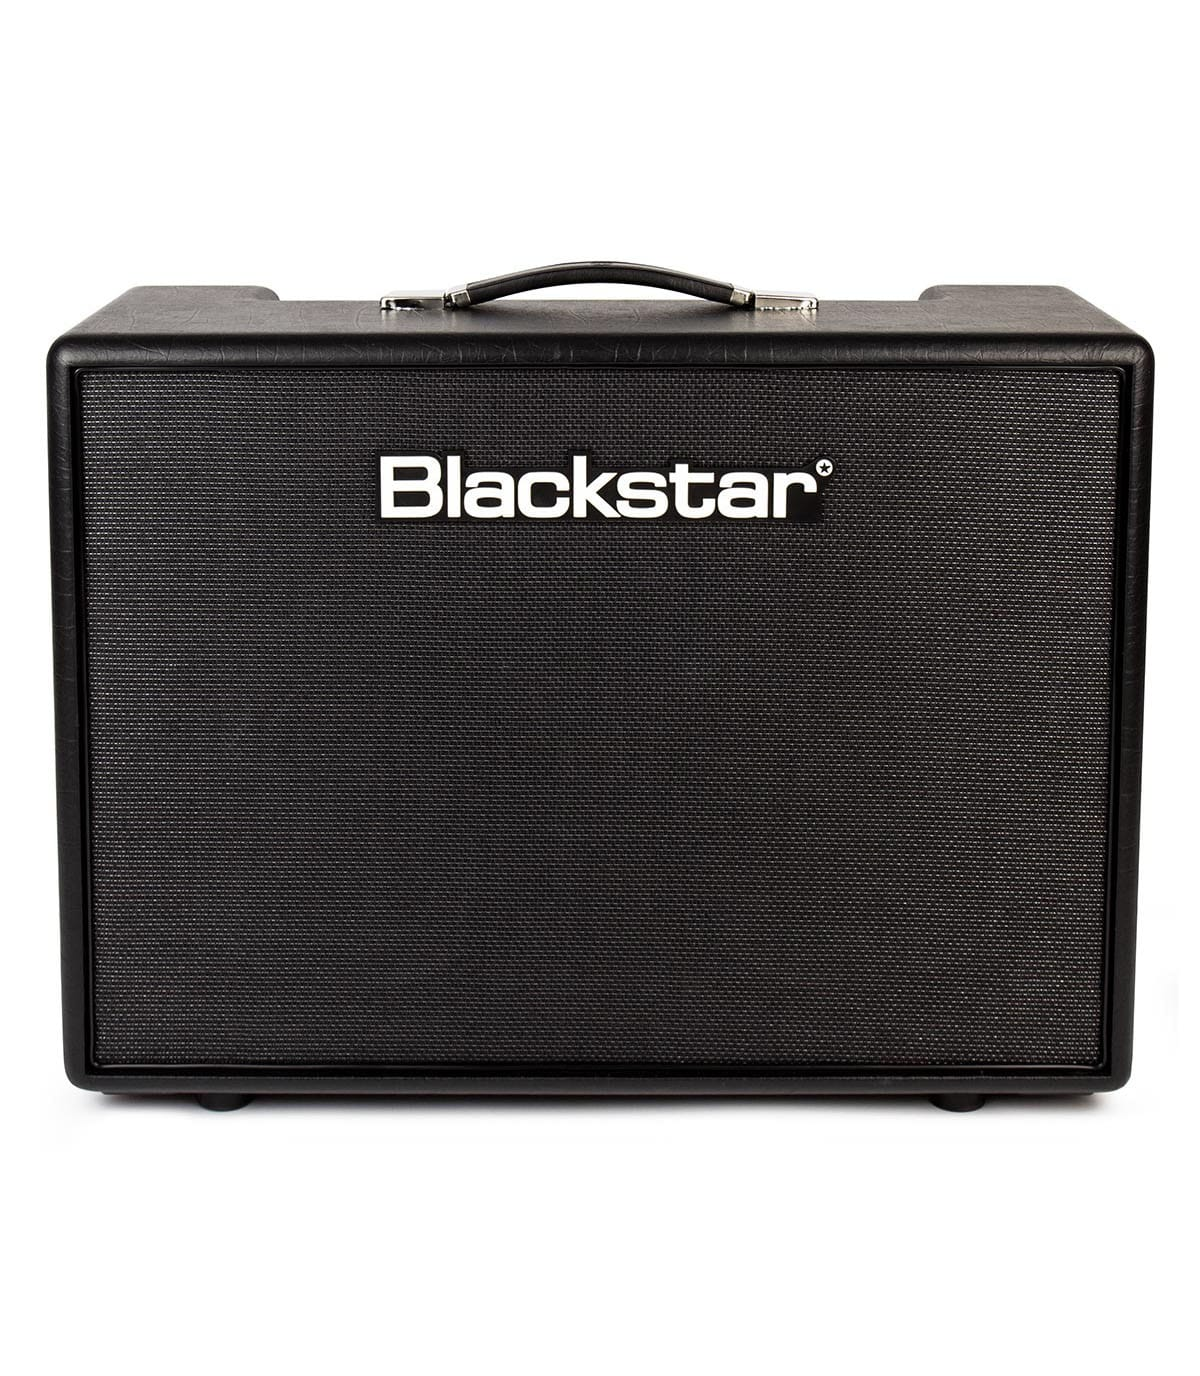 Blackstar - Artist 30 - Melody House Musical Instruments